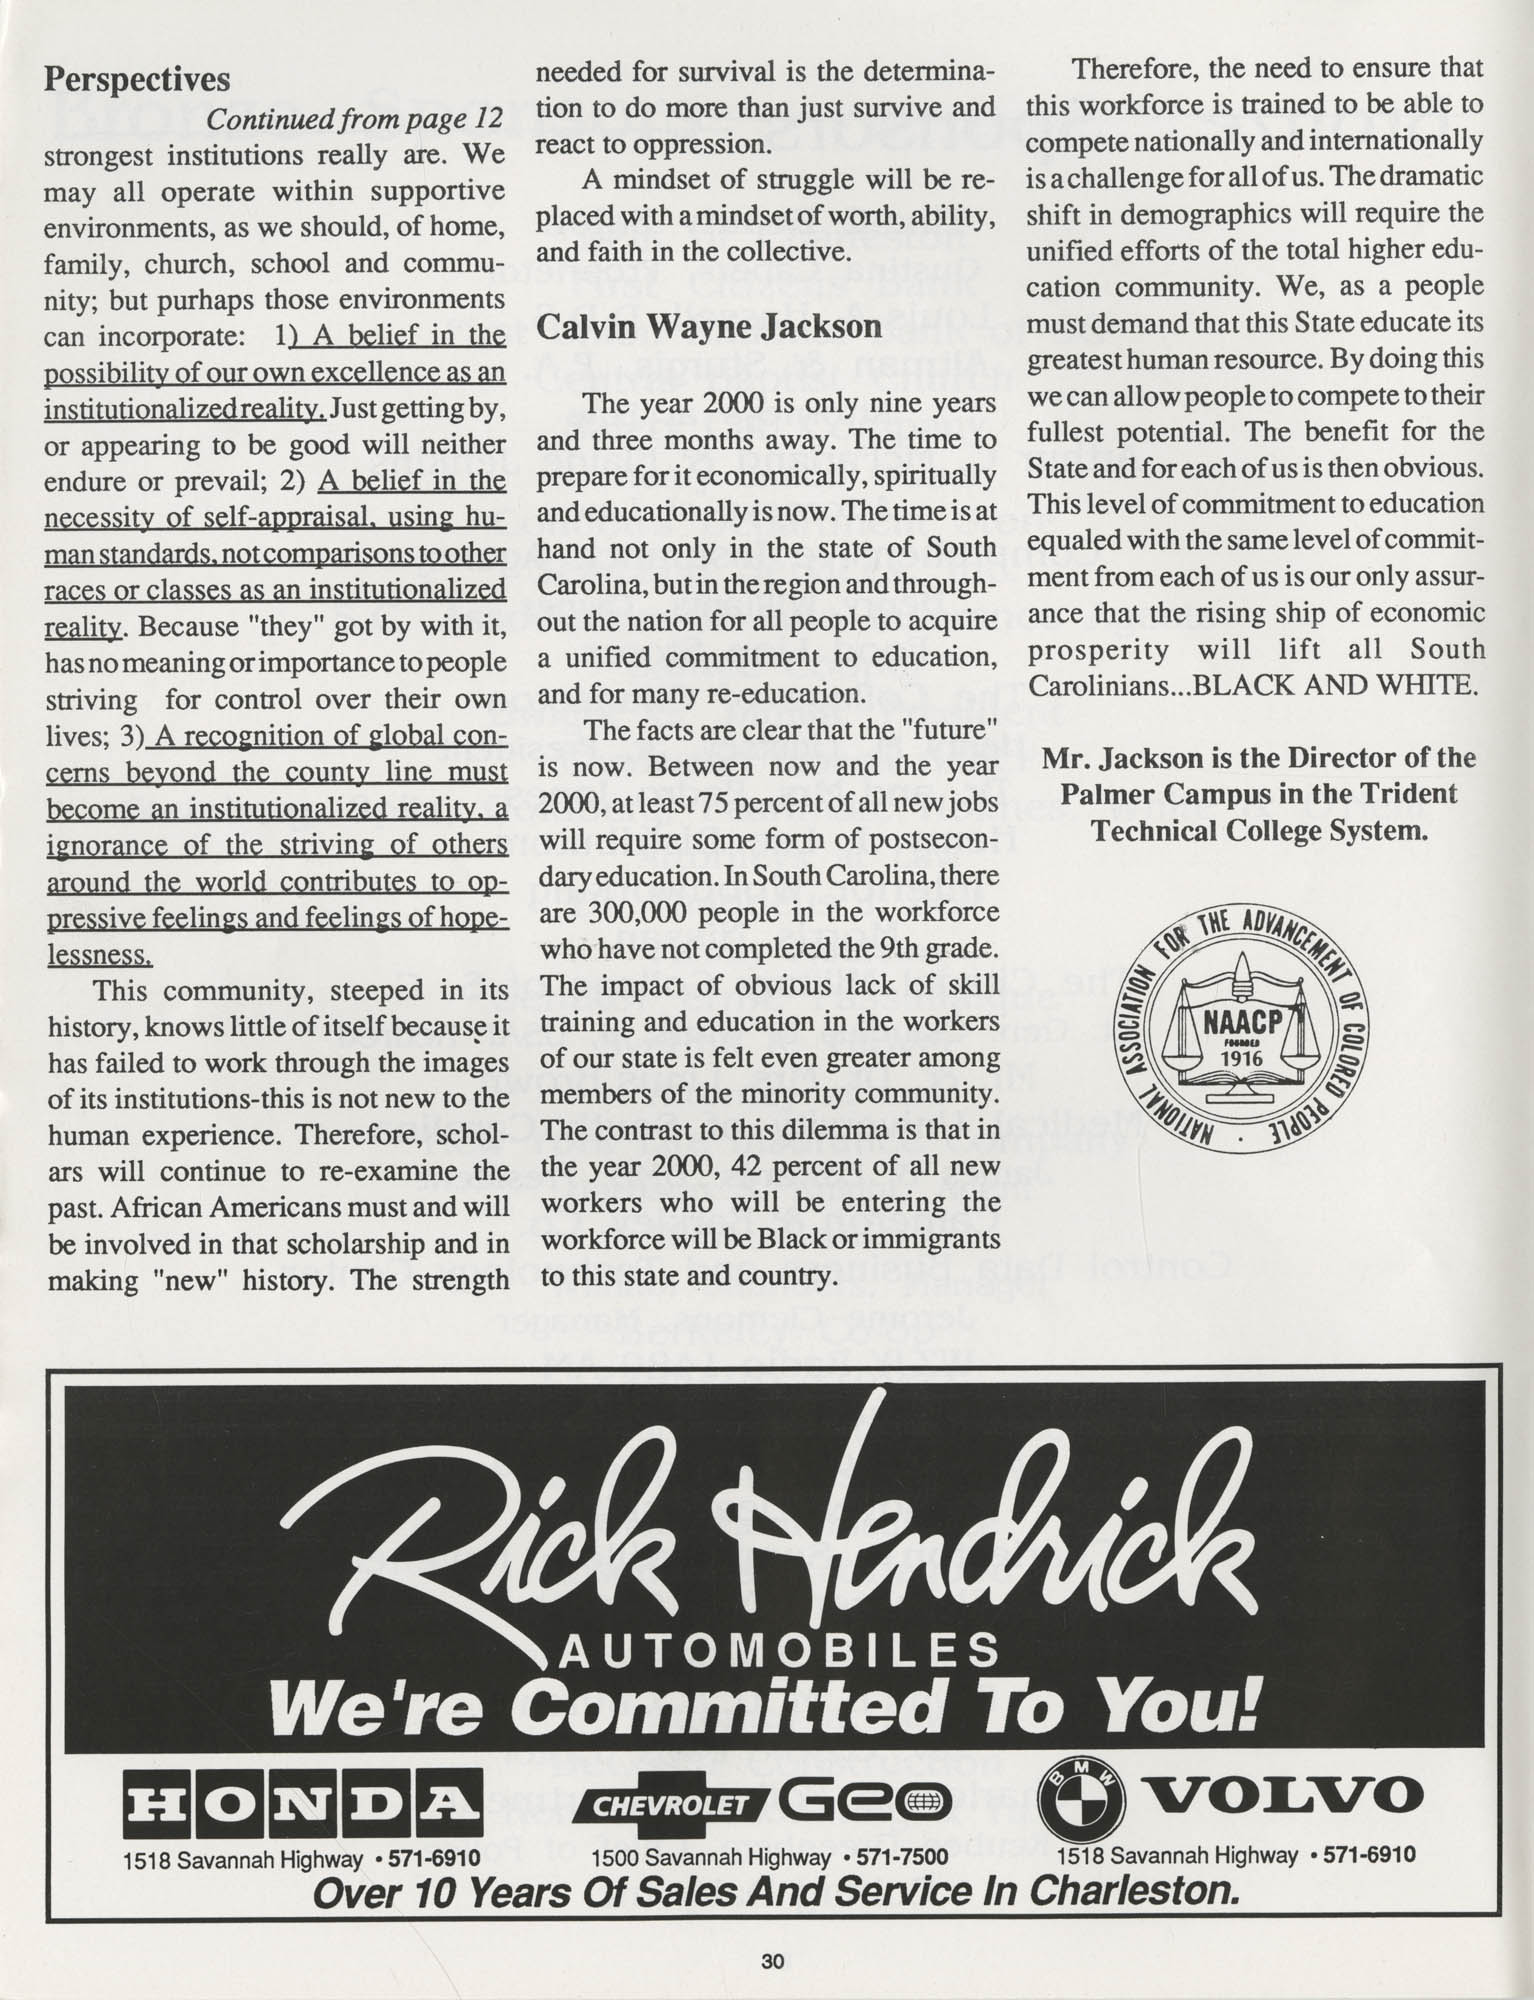 1990 NAACP Freedom Fund Magazine, Charleston Branch of the NAACP, 74th Anniversary, Page 30